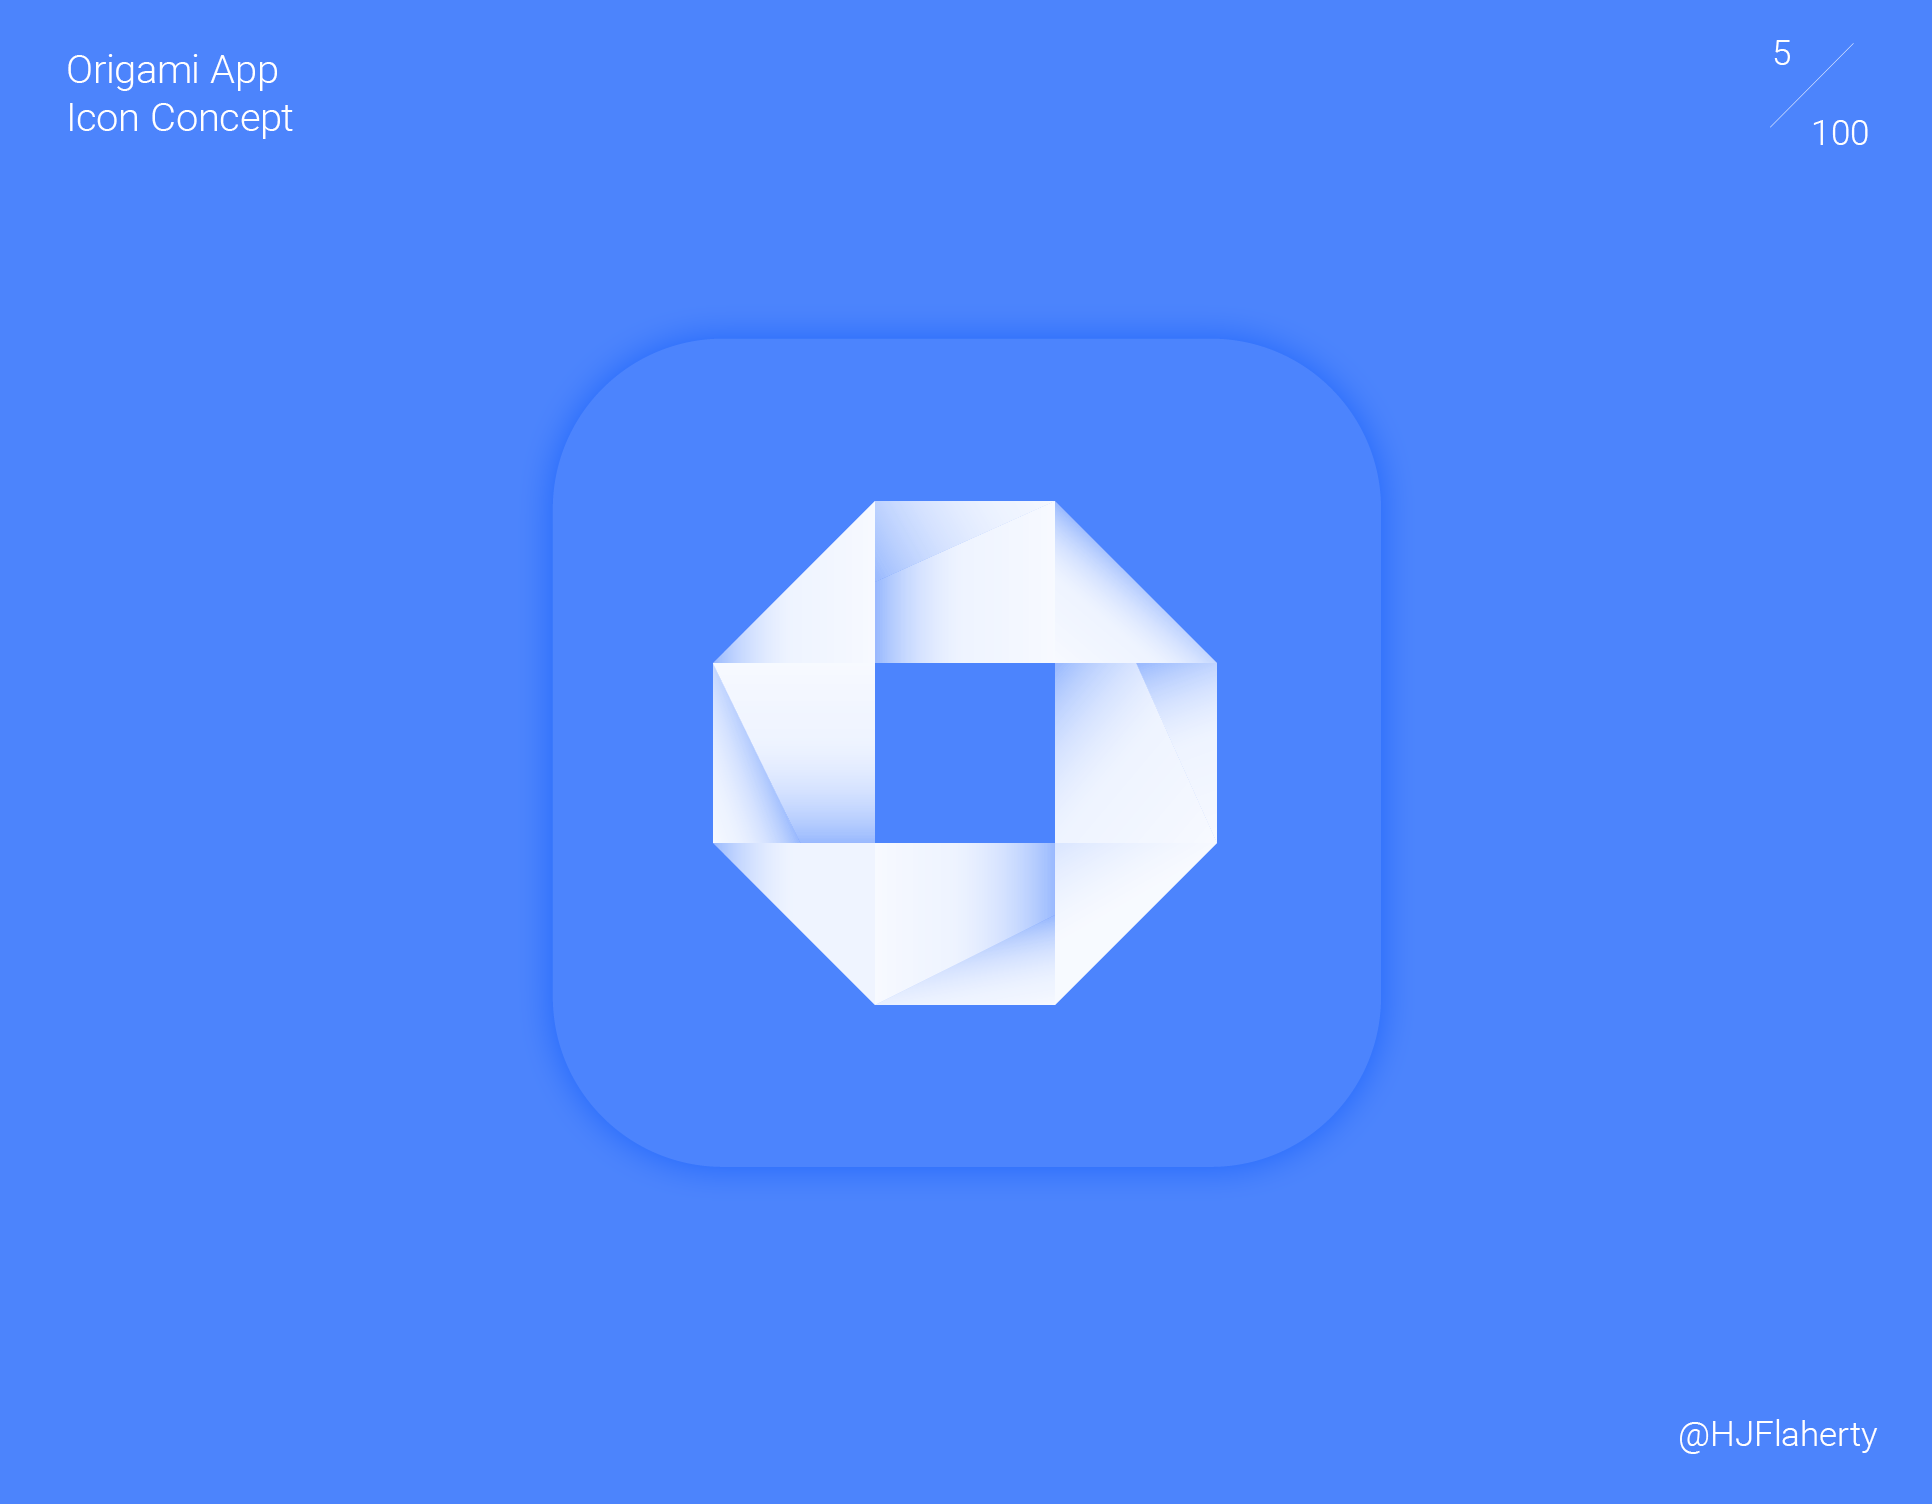 UI Daily Challenge 5 – App Icon - The brief on day 5 was to design a app Icon. I had designed an icon for an Origami app concept which its purpose is to teach people how to make Origami. I had gone for a simplistic geometric icon which can be seen clearly from a distance.